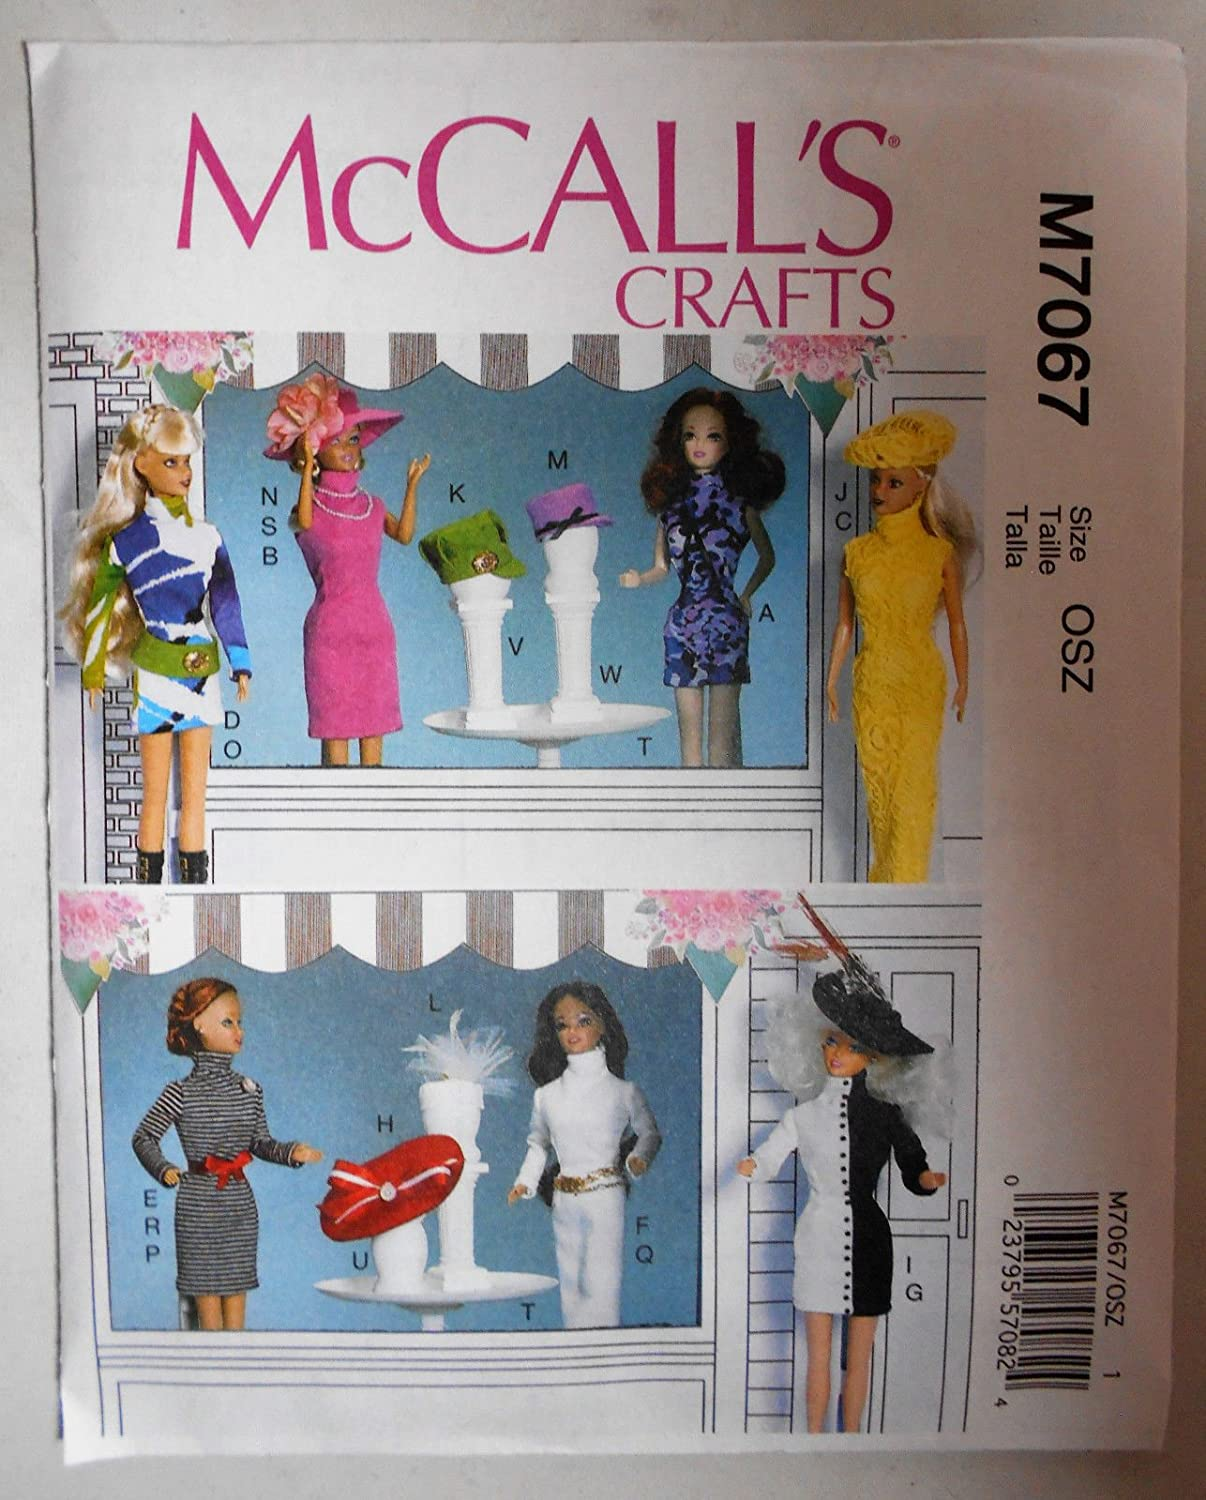 McCall's 7067 Sewing Pattern for 11.5